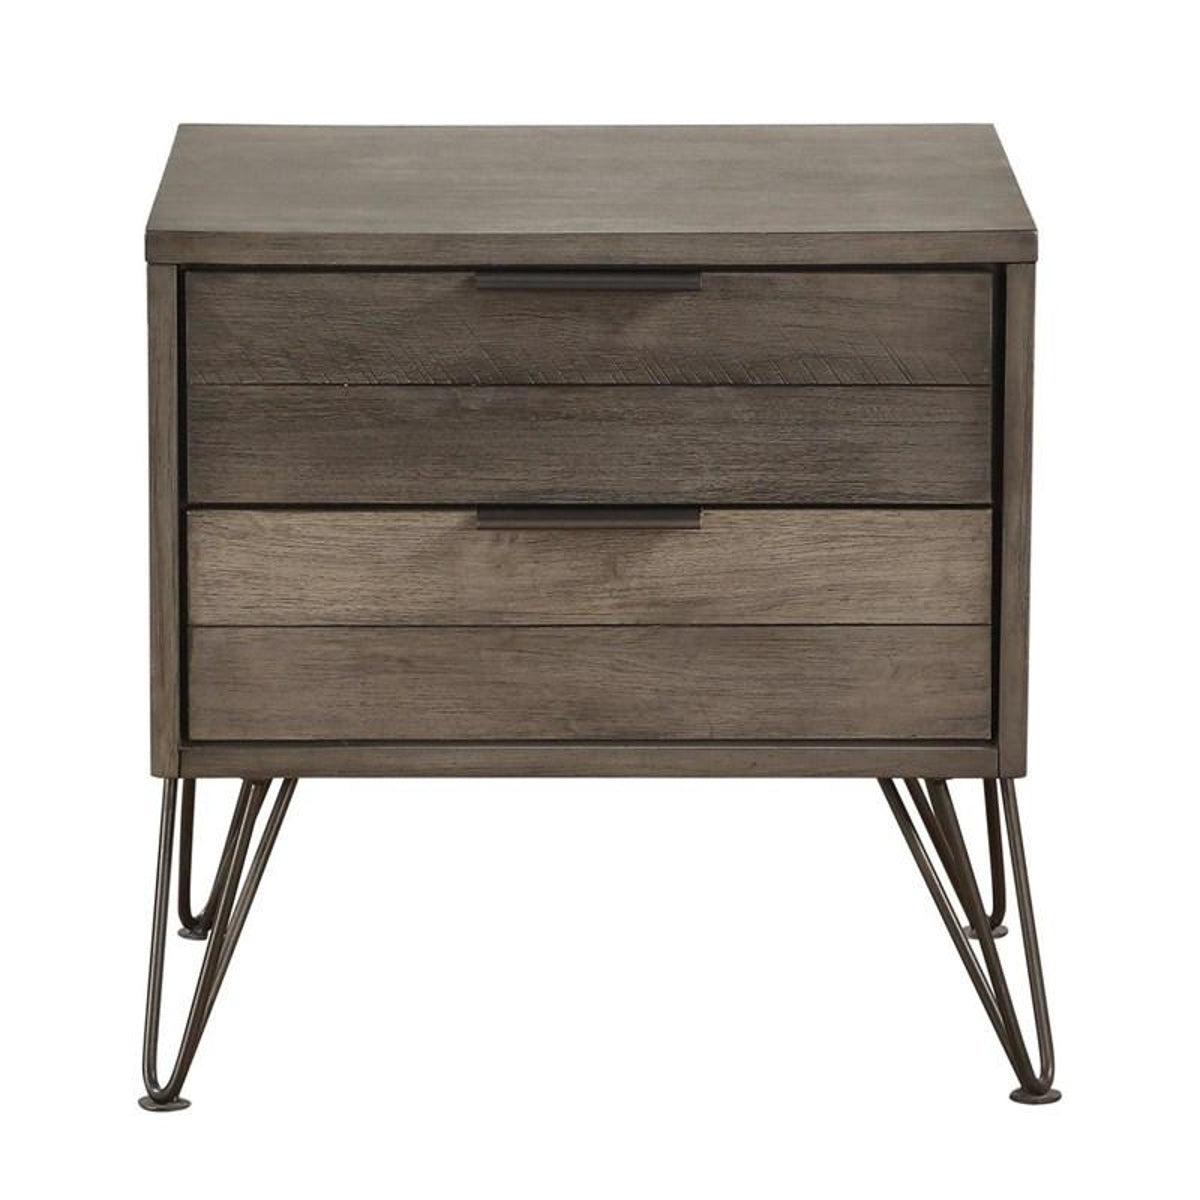 Homelegance Urbanite Nightstand in Tri-tone Gray 1604-4 image